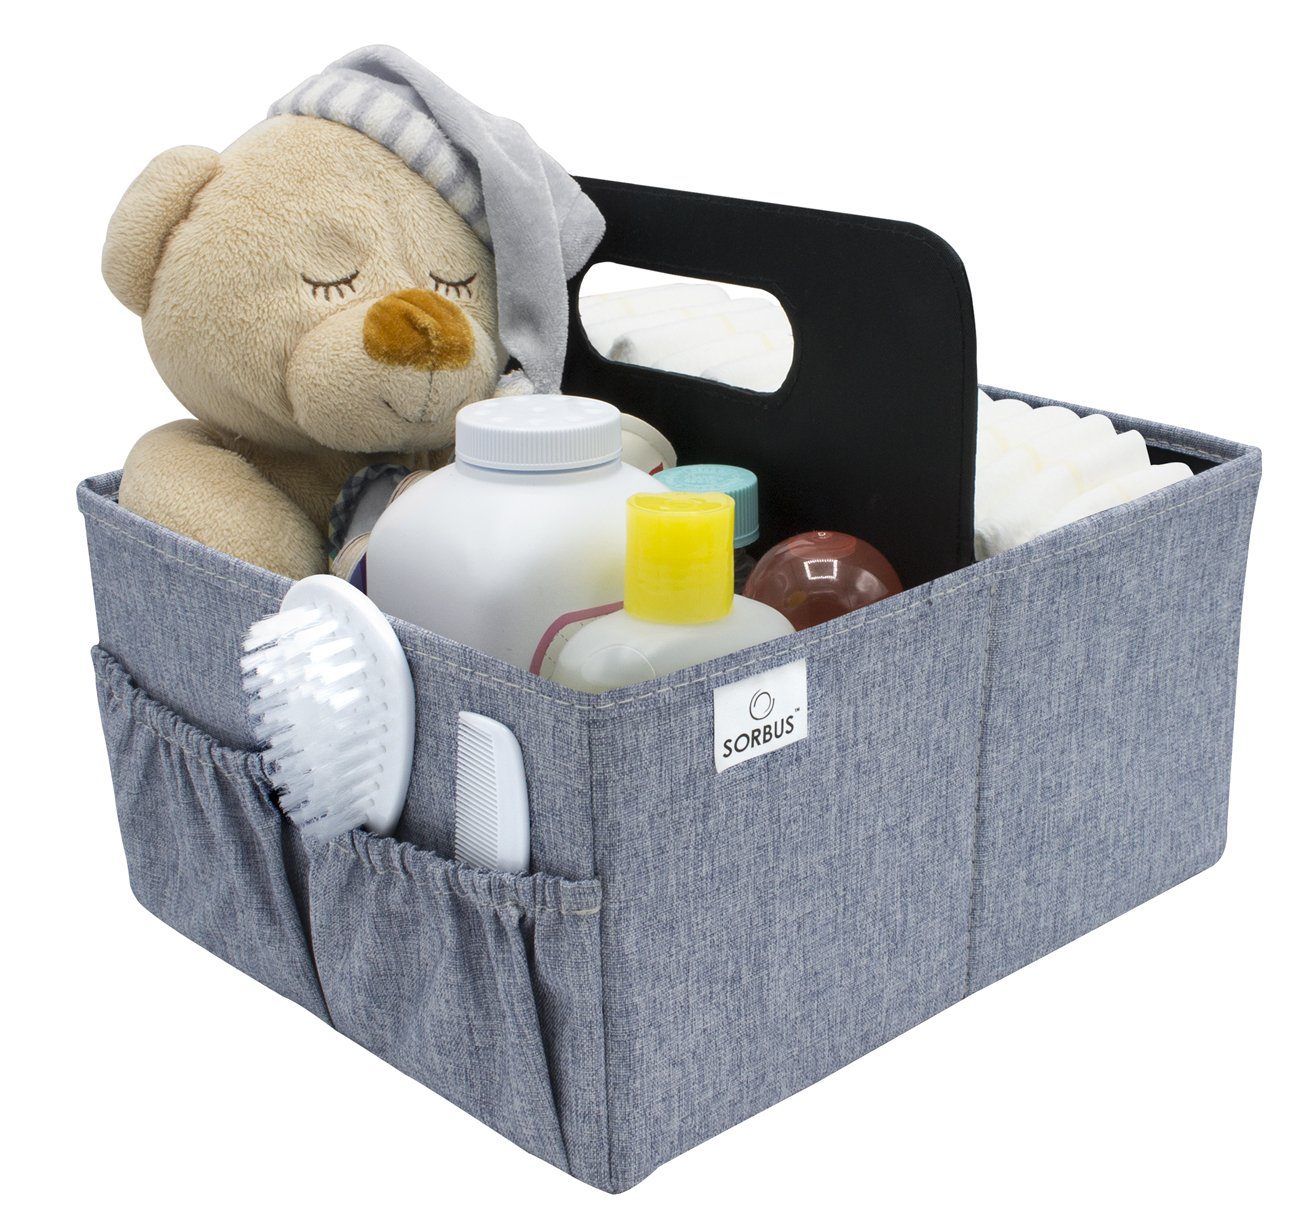 Sorbus Baby Diaper Caddy Organizer | Nursery Storage Bin for Diapers Wipes & Toys | Portable Car Storage Basket | Changing Table Organizer | Great Baby Shower Gift Basket (Blue) STRG-CAD-BA